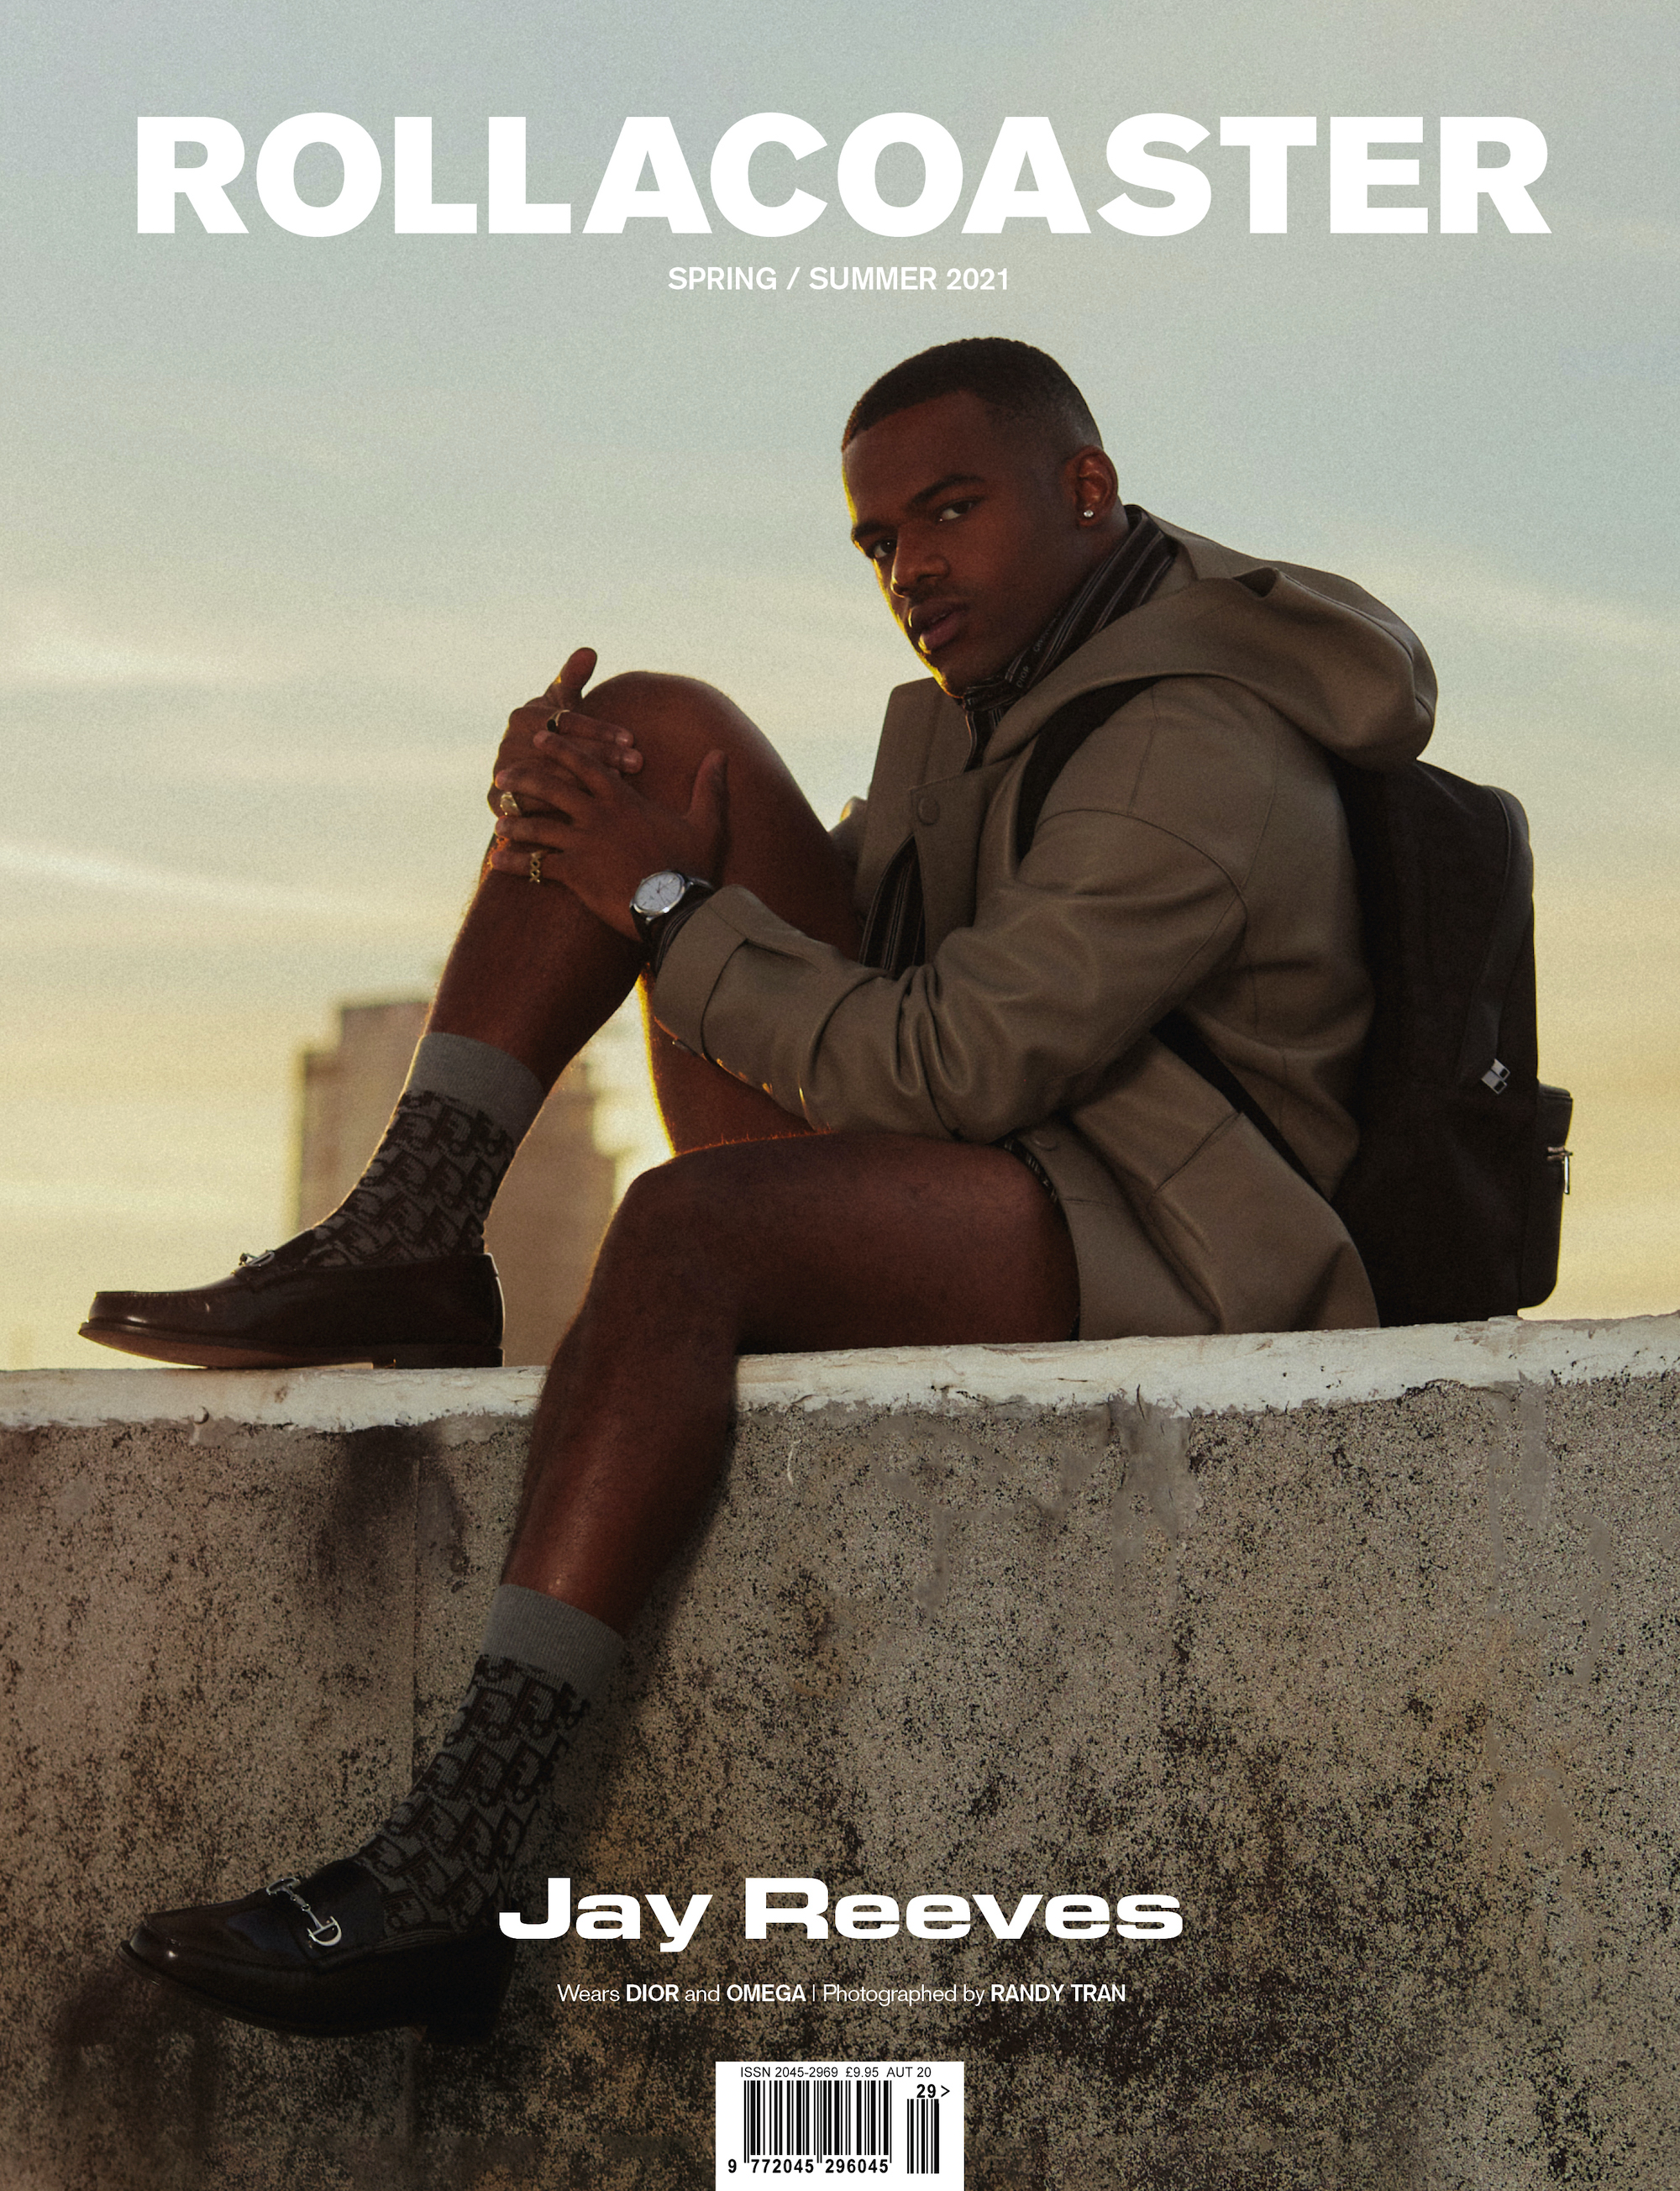 Jay Reevs for Rollacoaster